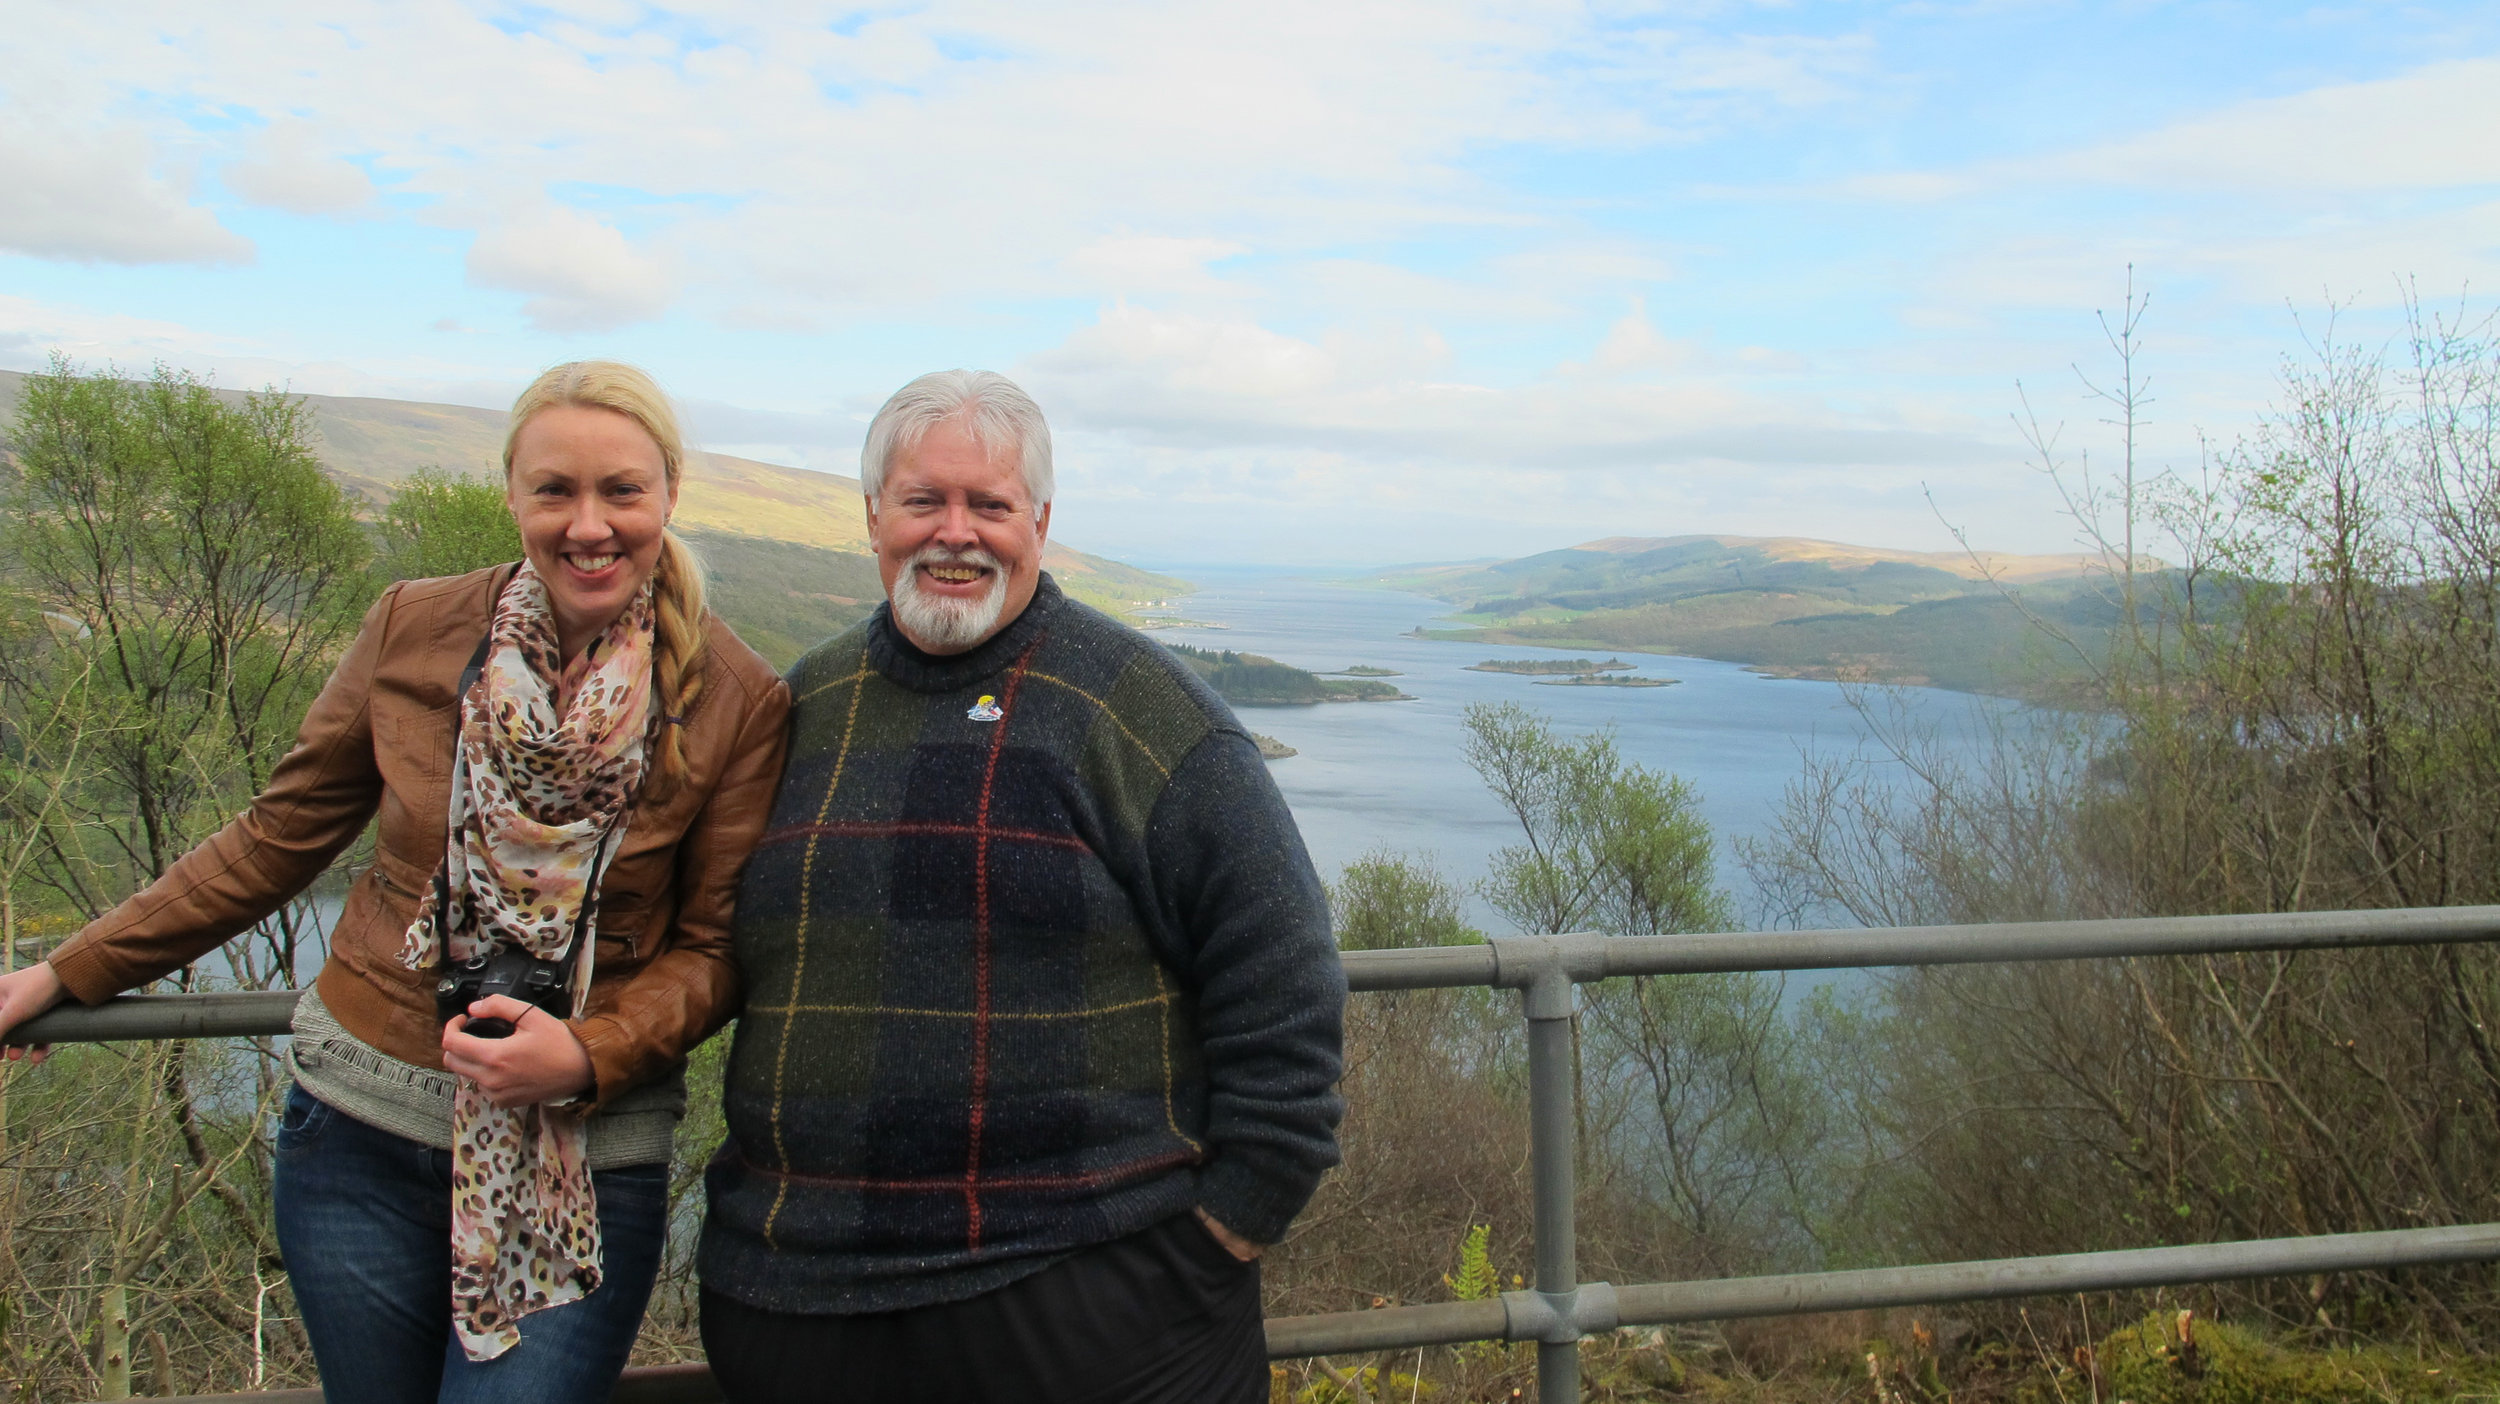 """Susanne Arbuckle spent her day off showing me around her home, the Isle of Bute. When I first arrived in Scotland, she greeted me with a tweet I'll never forget... """"Tonight there's a new Glen in Scoland."""""""